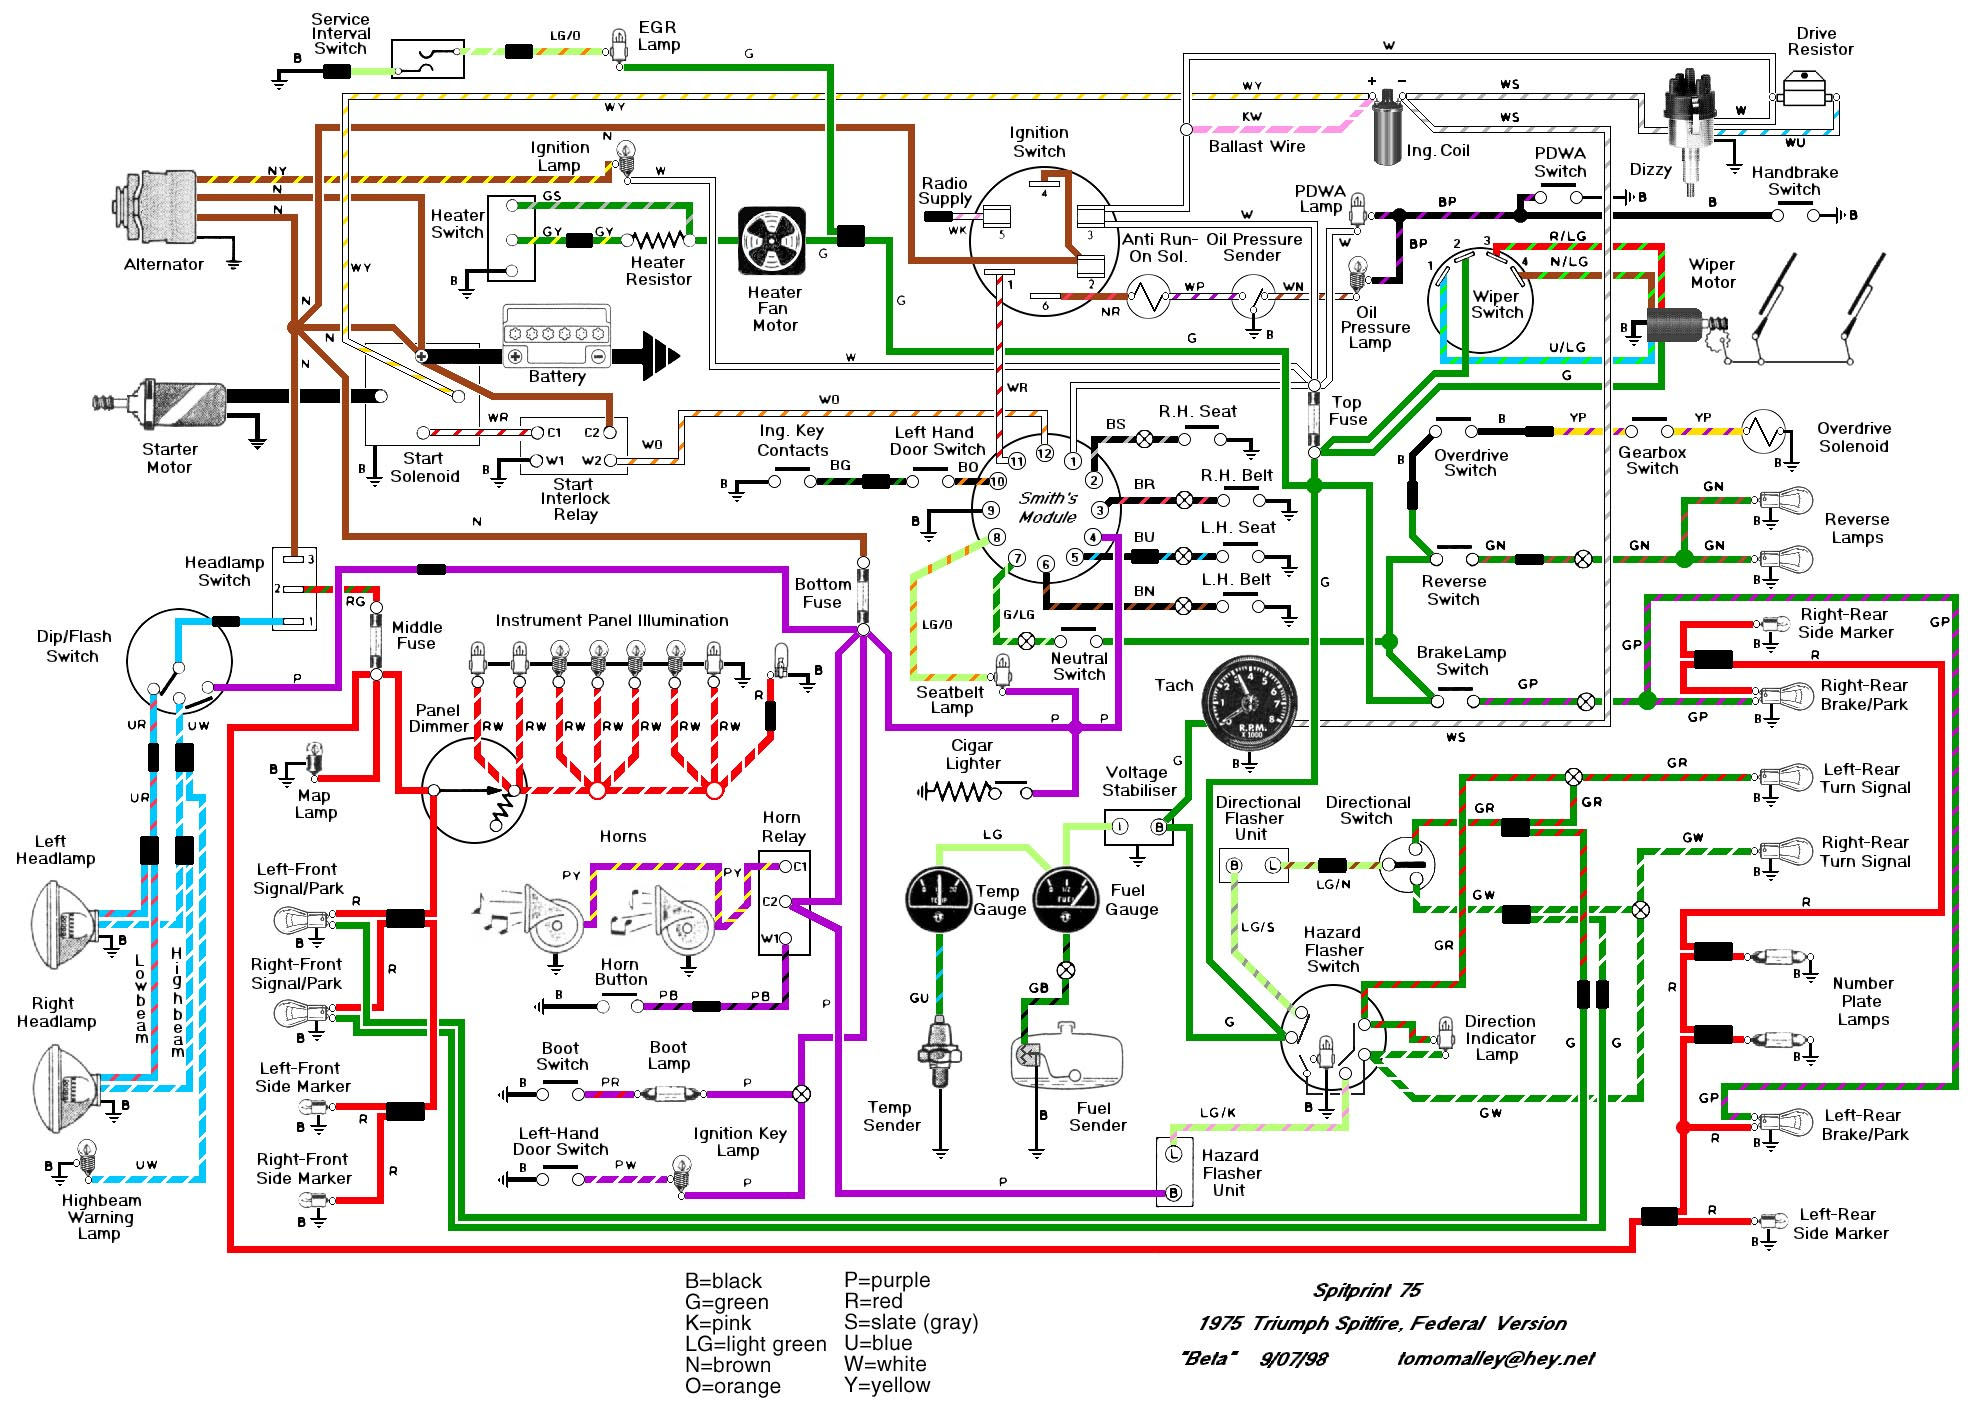 Wiring Diagram For A Car - Wiring Diagram Detailed - Automobile Wiring Diagram